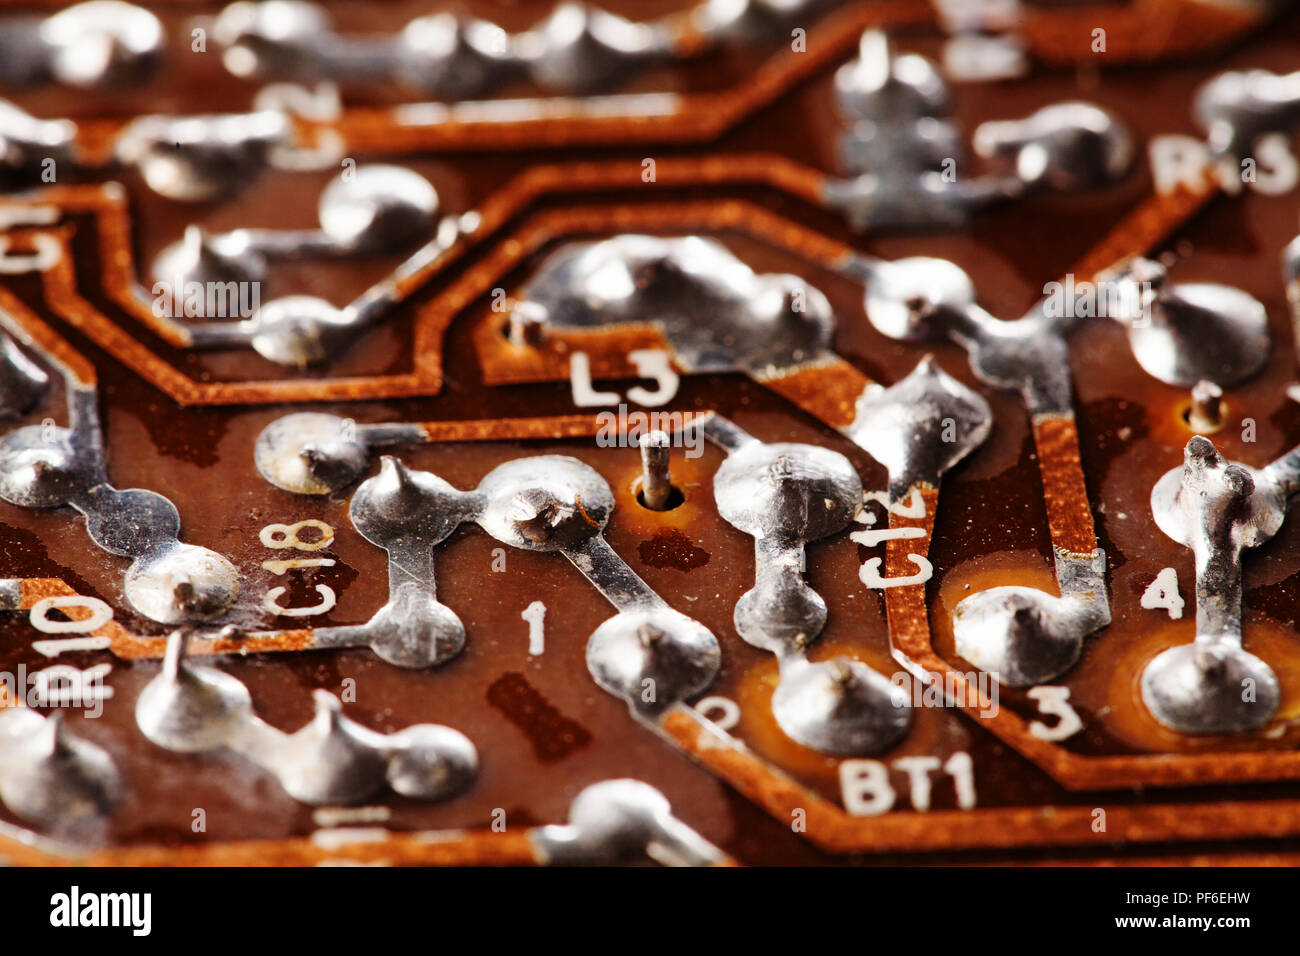 Retro Circuit Board Stock Photos Images Integrated Circuitvintage Chip Macro View Vintage Electronic Component With Soldering Traces Old Style Design